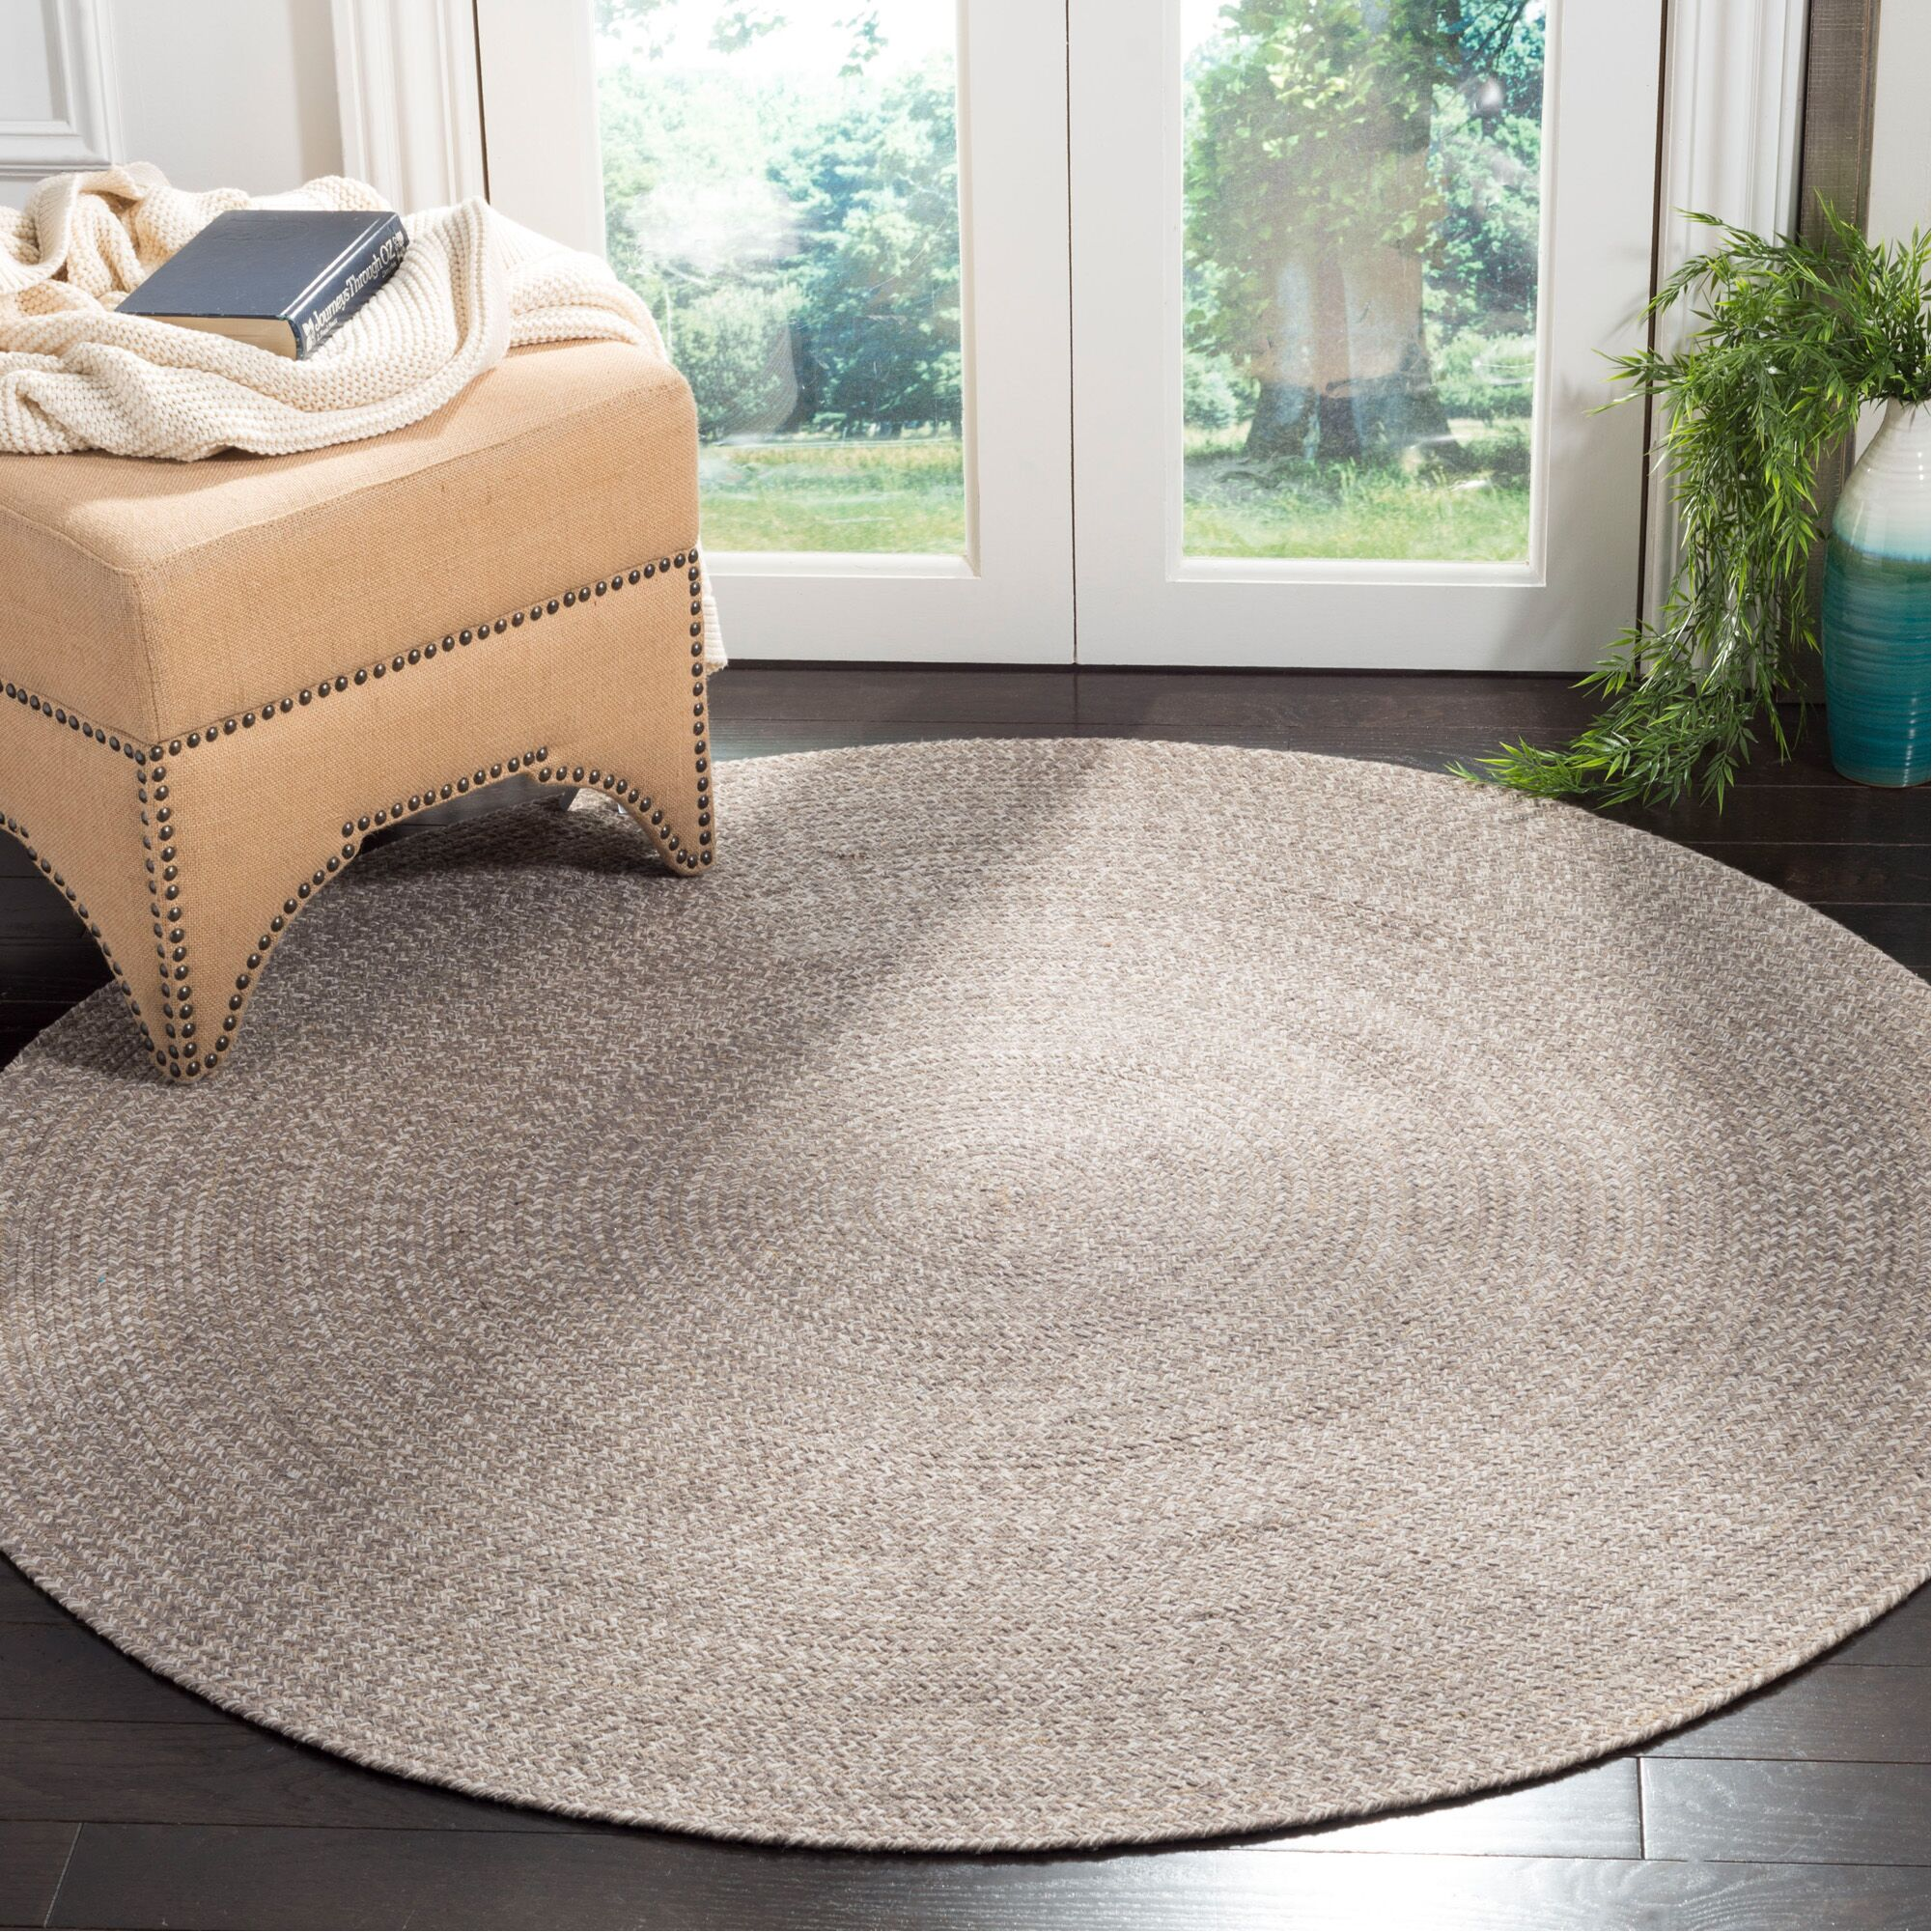 Paulina Versatile Hand Tufted Cotton Brown Area Rug Rug Size: Round 6'